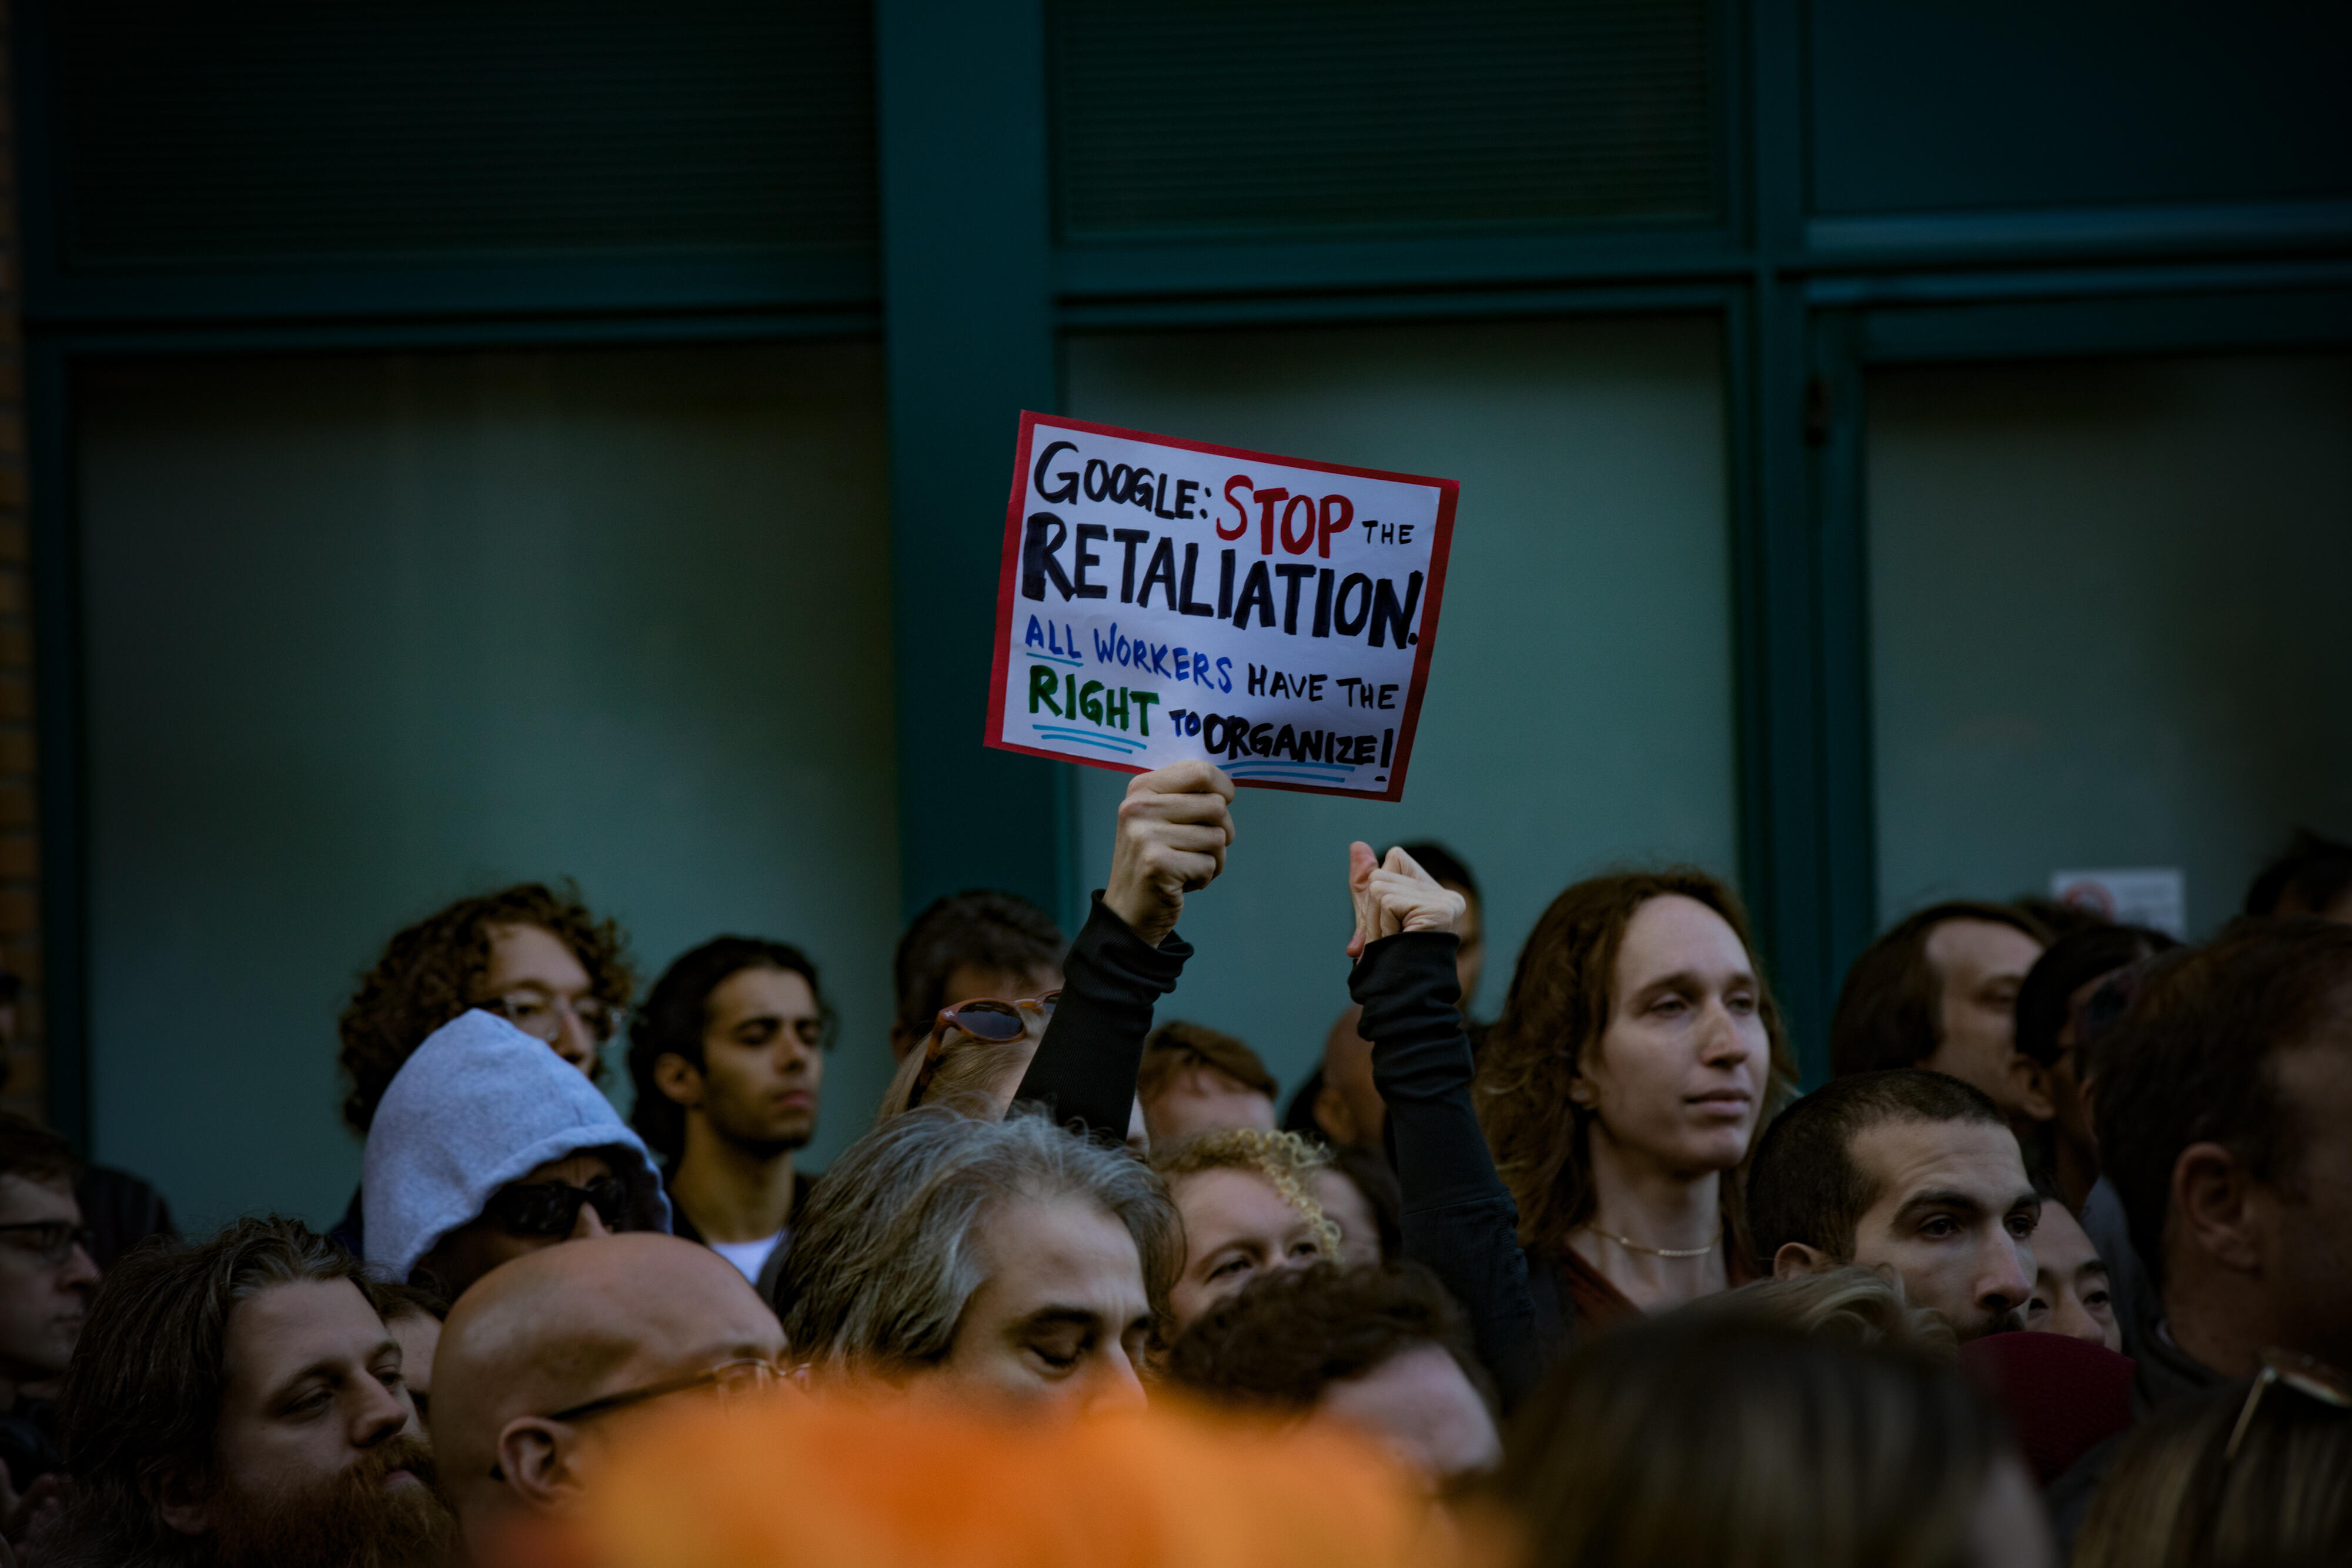 """Protesters with a sign: """"Google: Stop the retaliation. All workers have the right to organize!"""""""